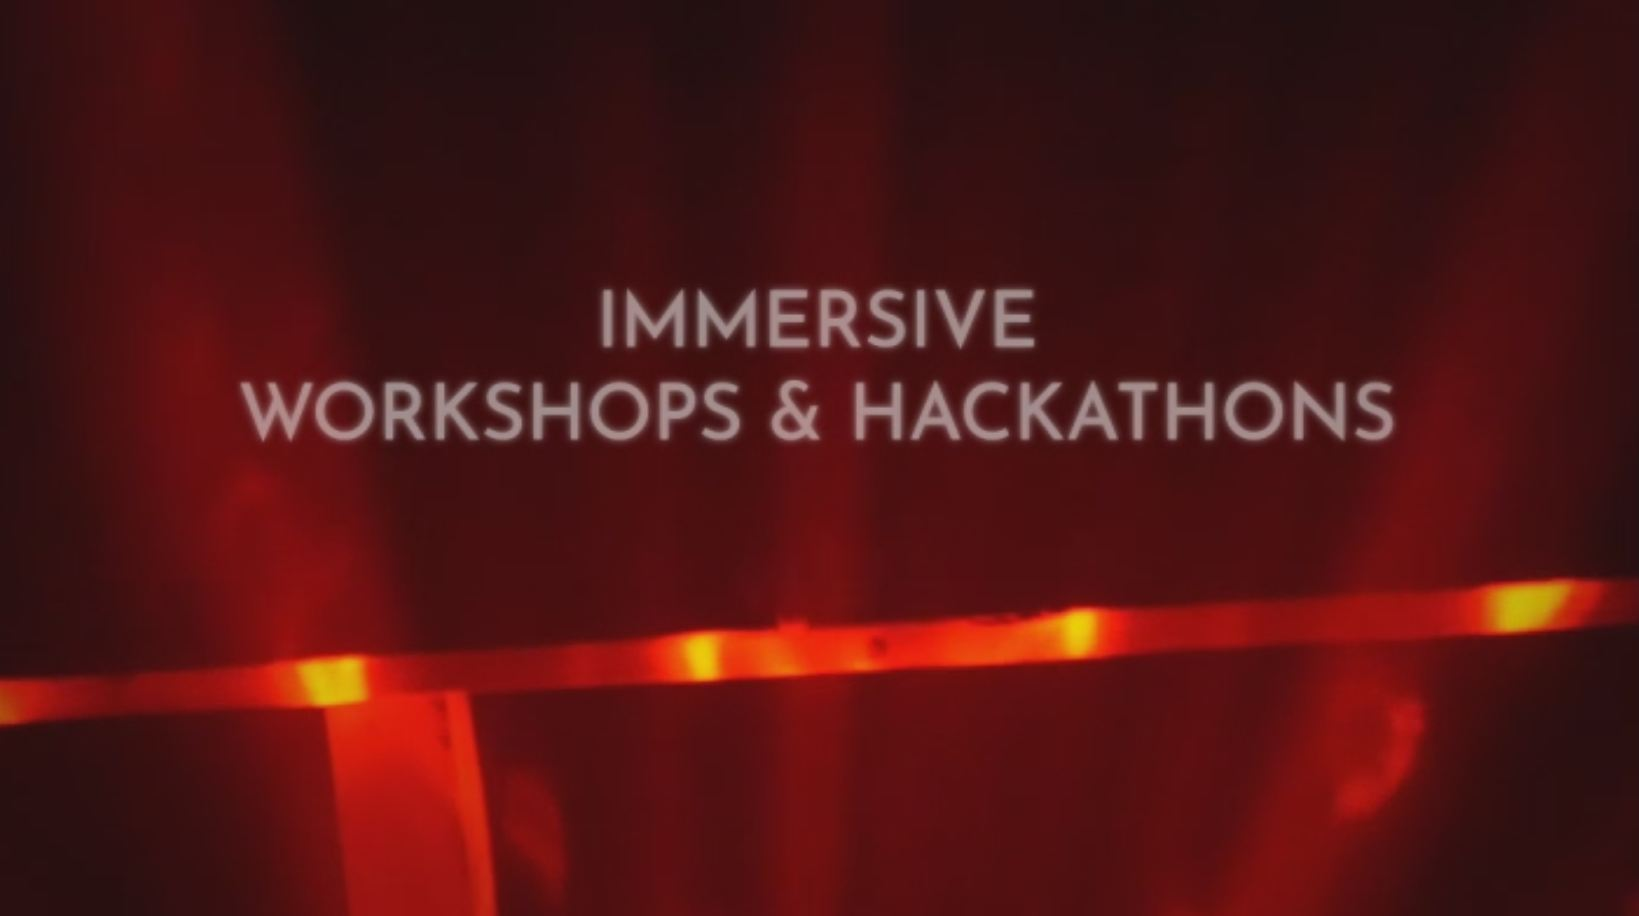 Immersive workshop hackathon